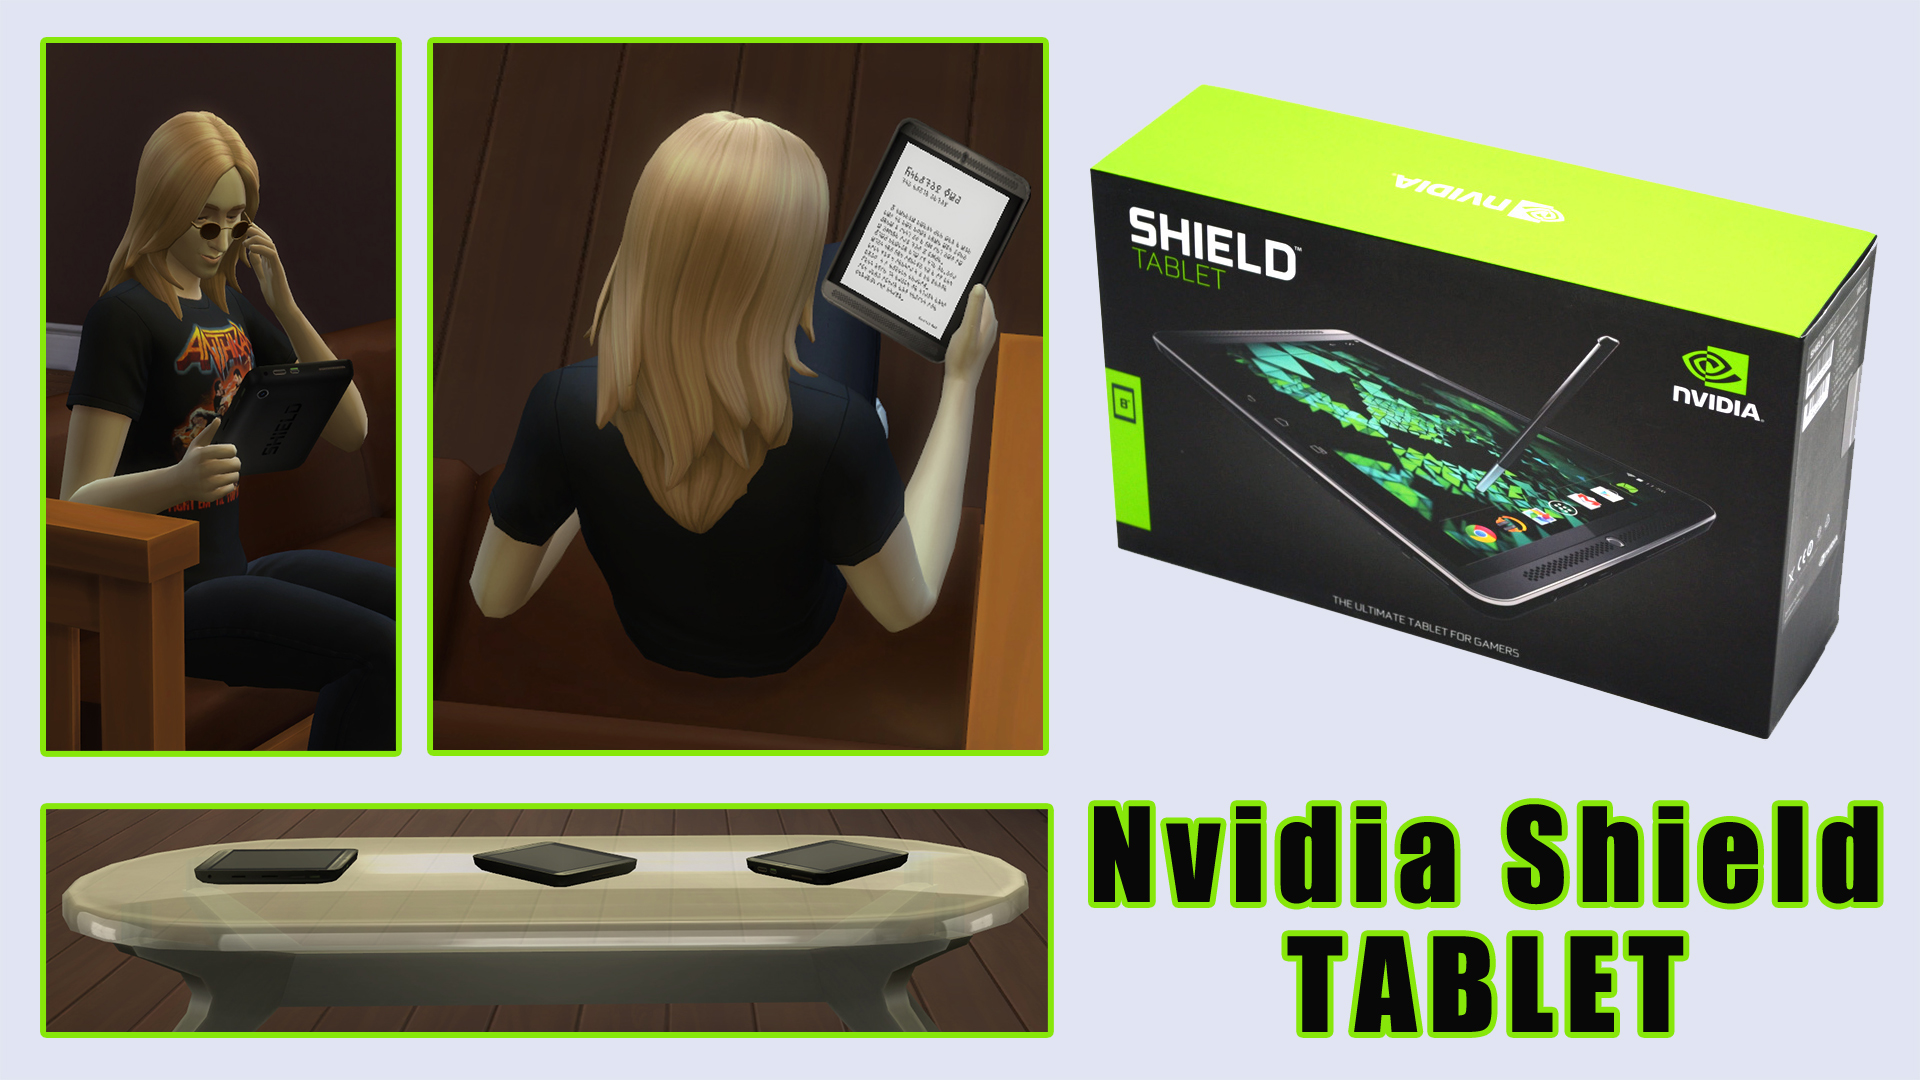 Nvidia Shield Tablet by ironleo78